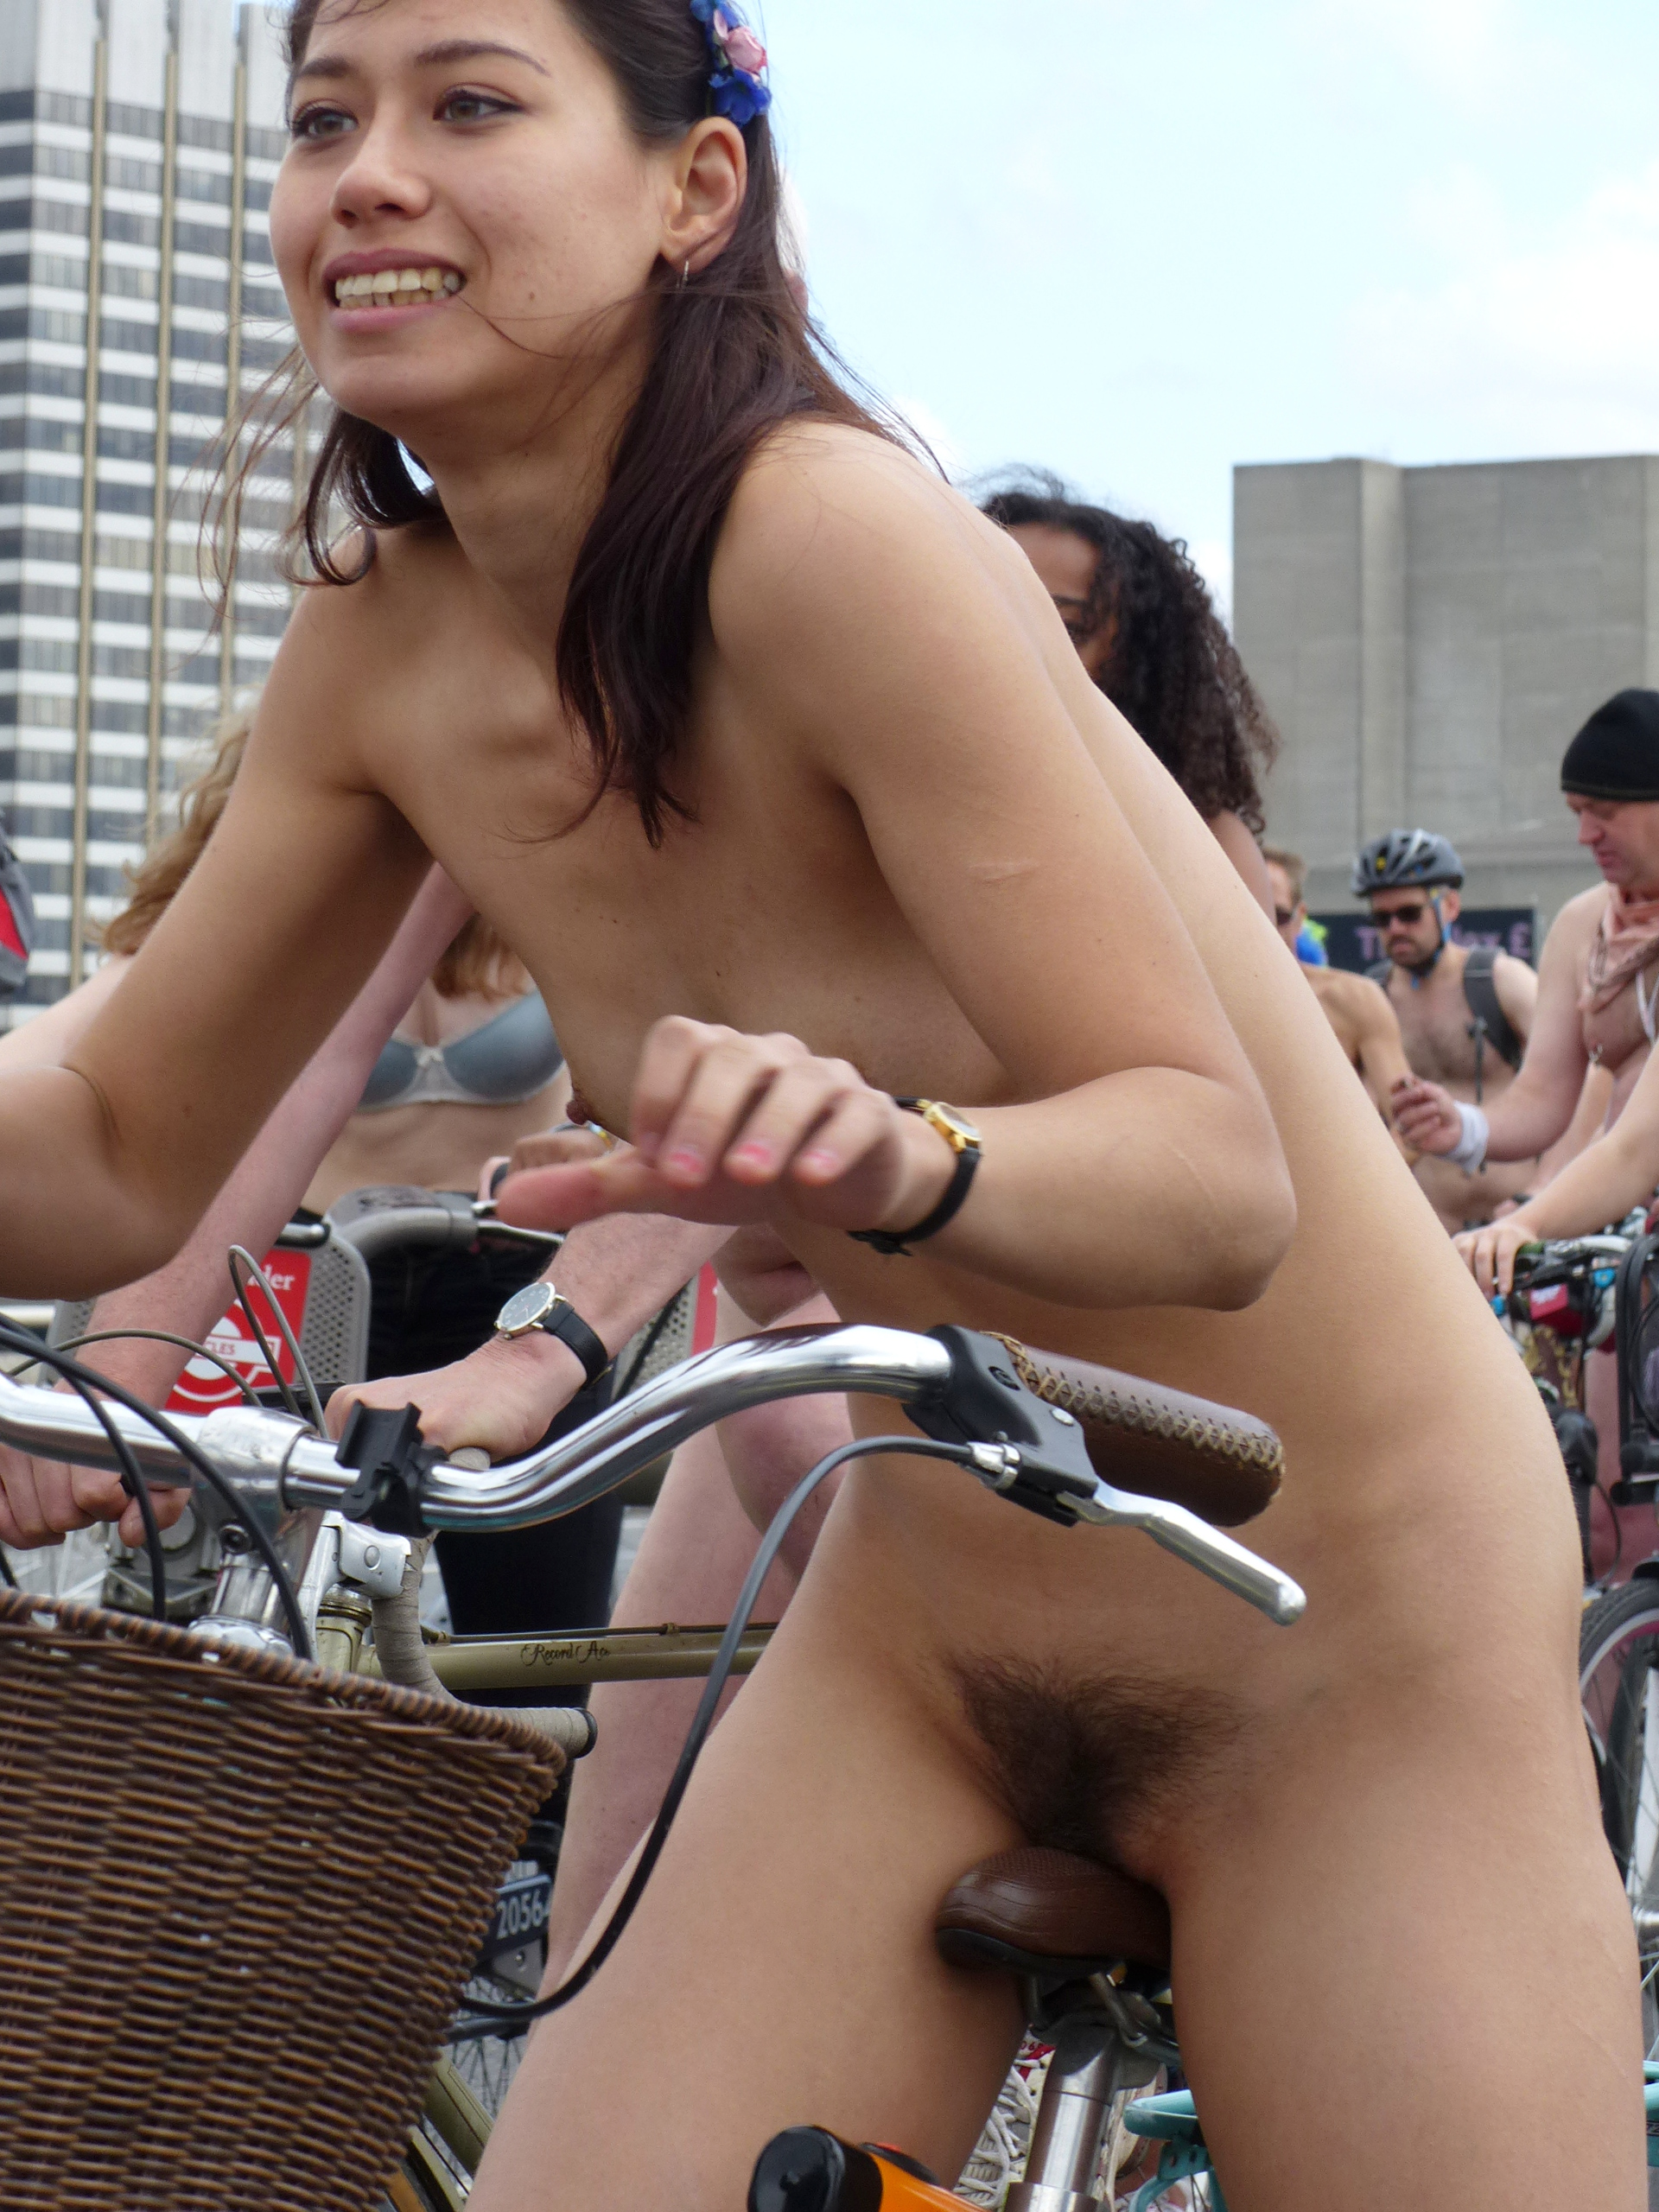 Apologise, but, Asian riding bikes nude